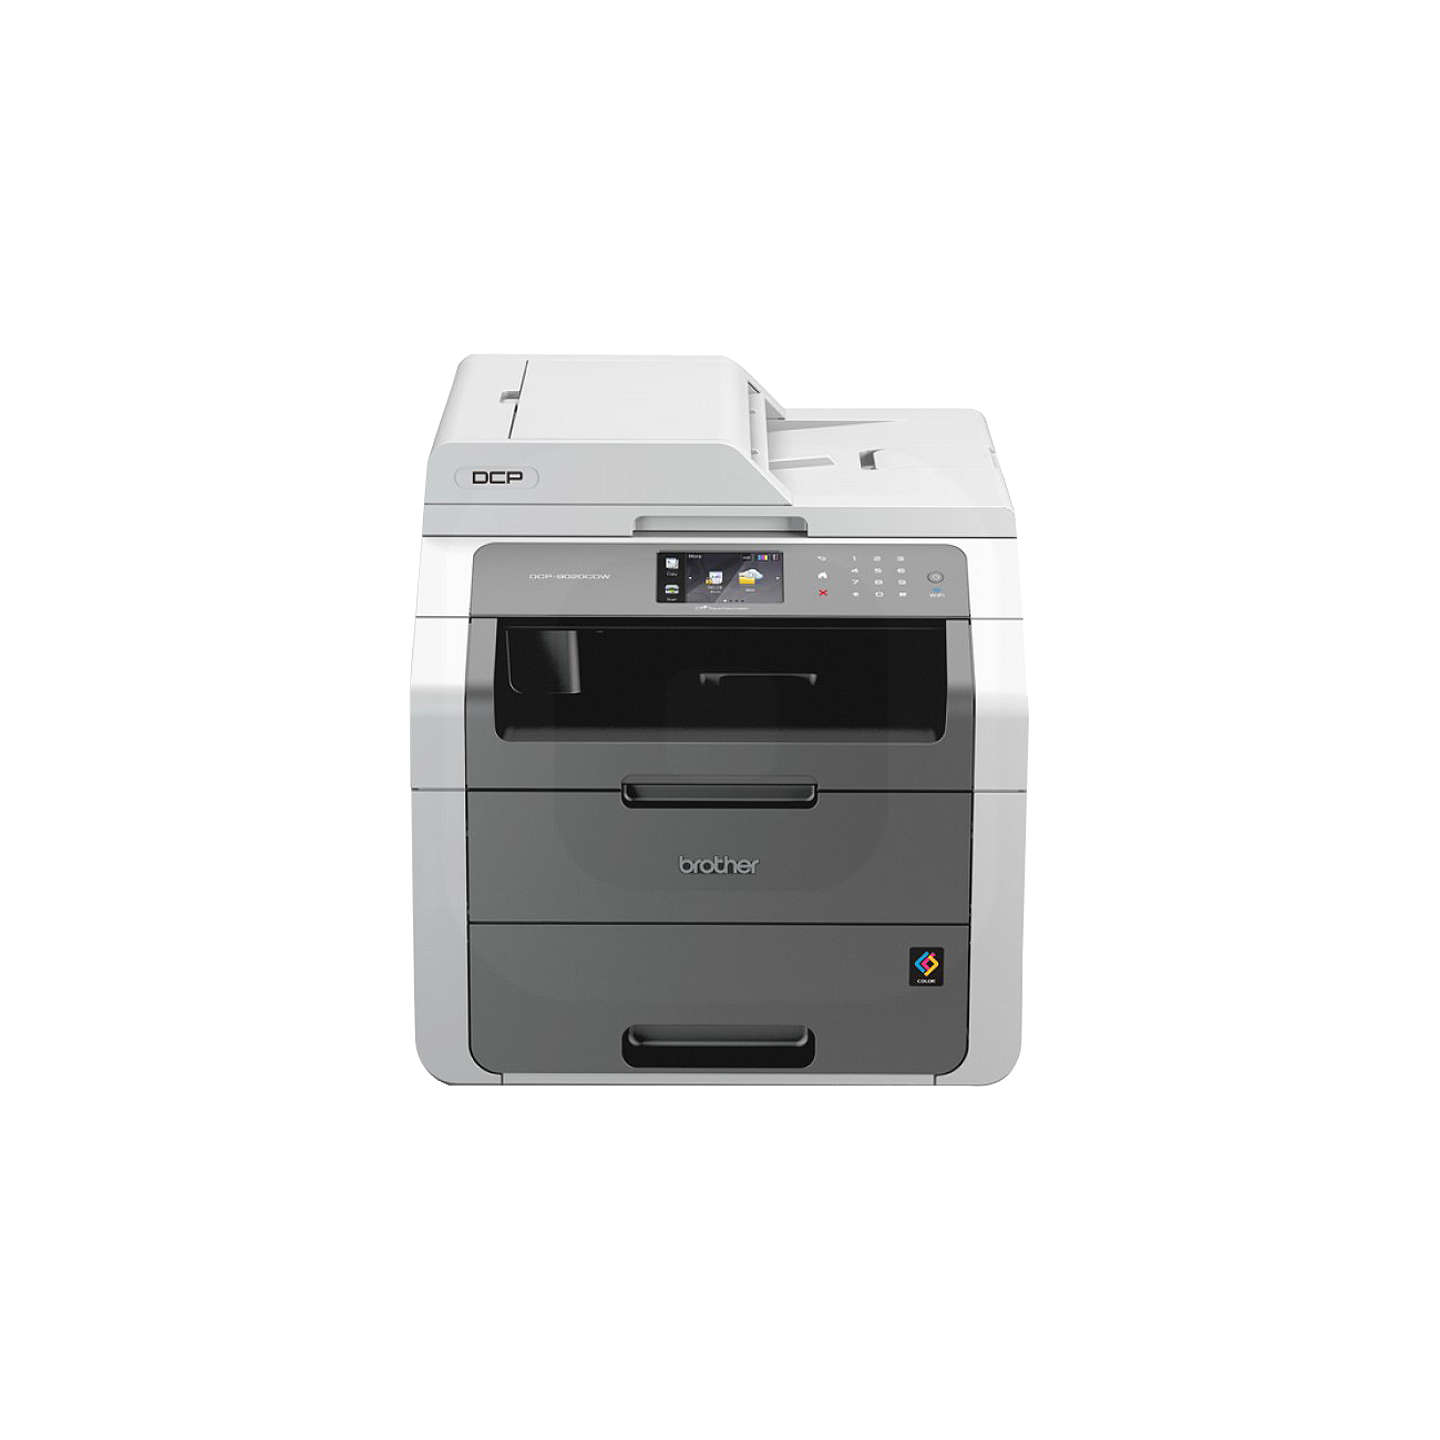 brother dcp 9020cdw all in one wireless laser printer at john lewis. Black Bedroom Furniture Sets. Home Design Ideas